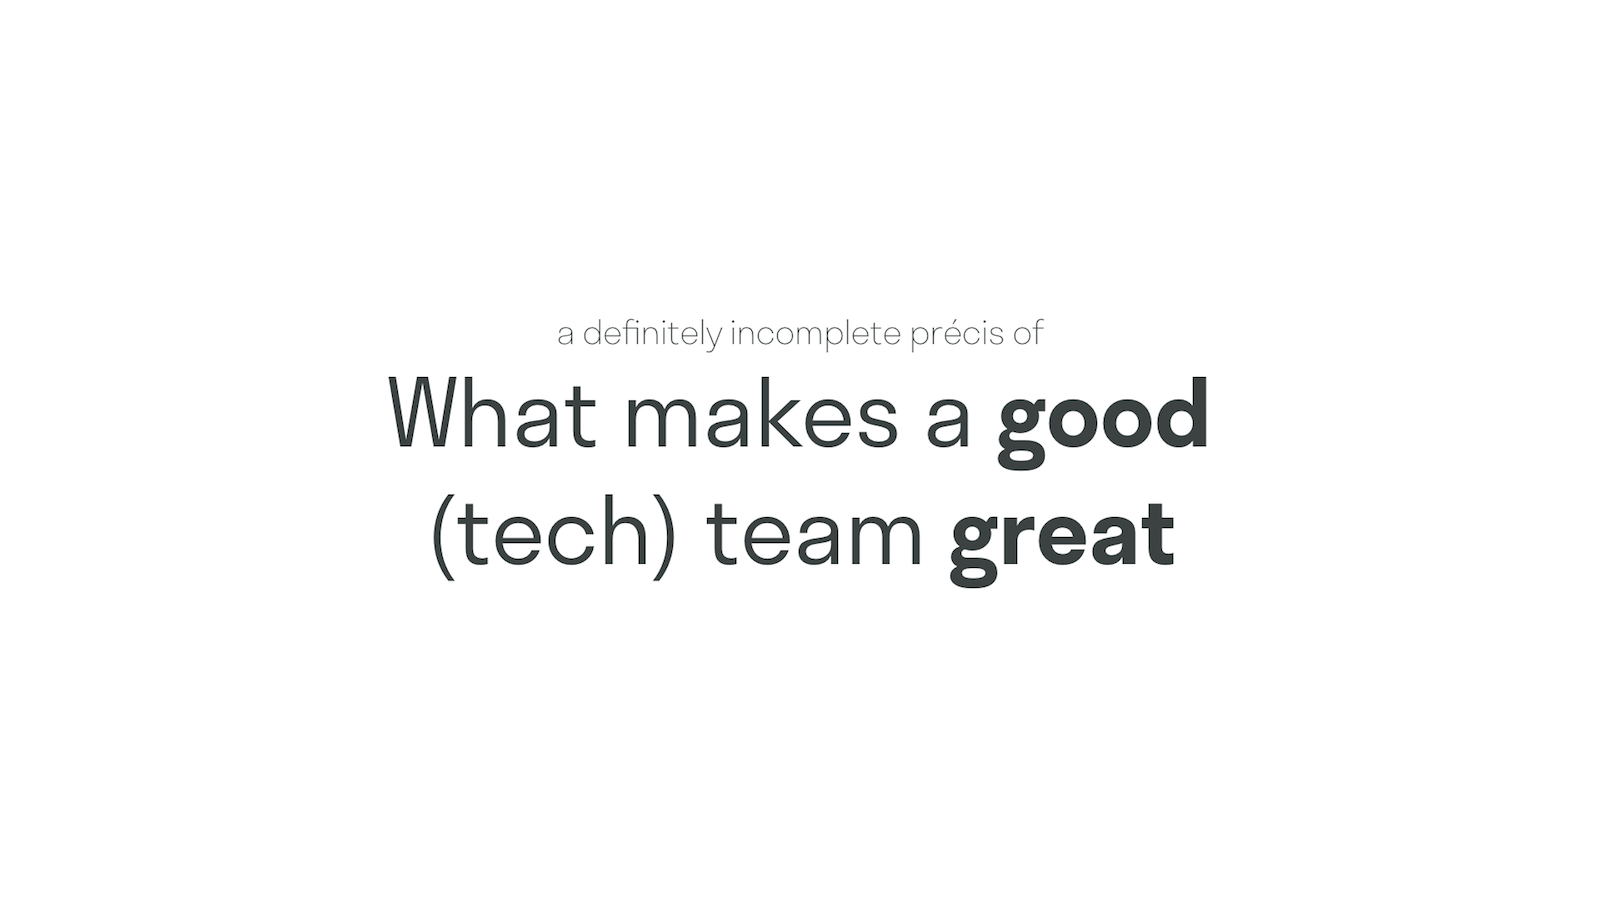 what makes a good tech team great